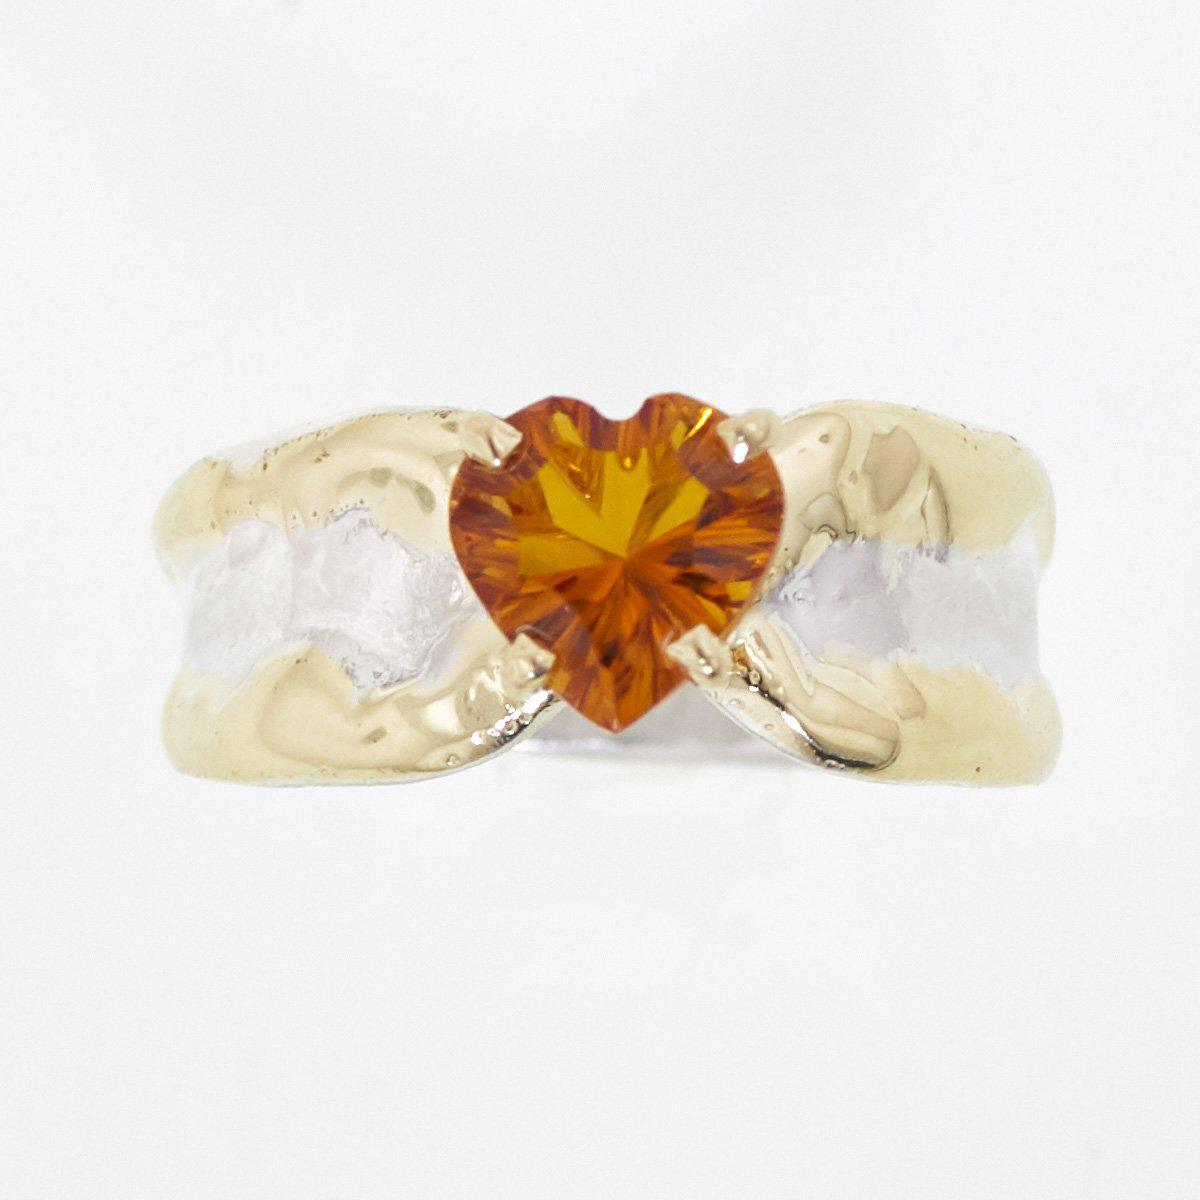 14K Gold & Crystalline Silver Citrine Heart Ring - 32878-Fusion Designs-Renee Taylor Gallery